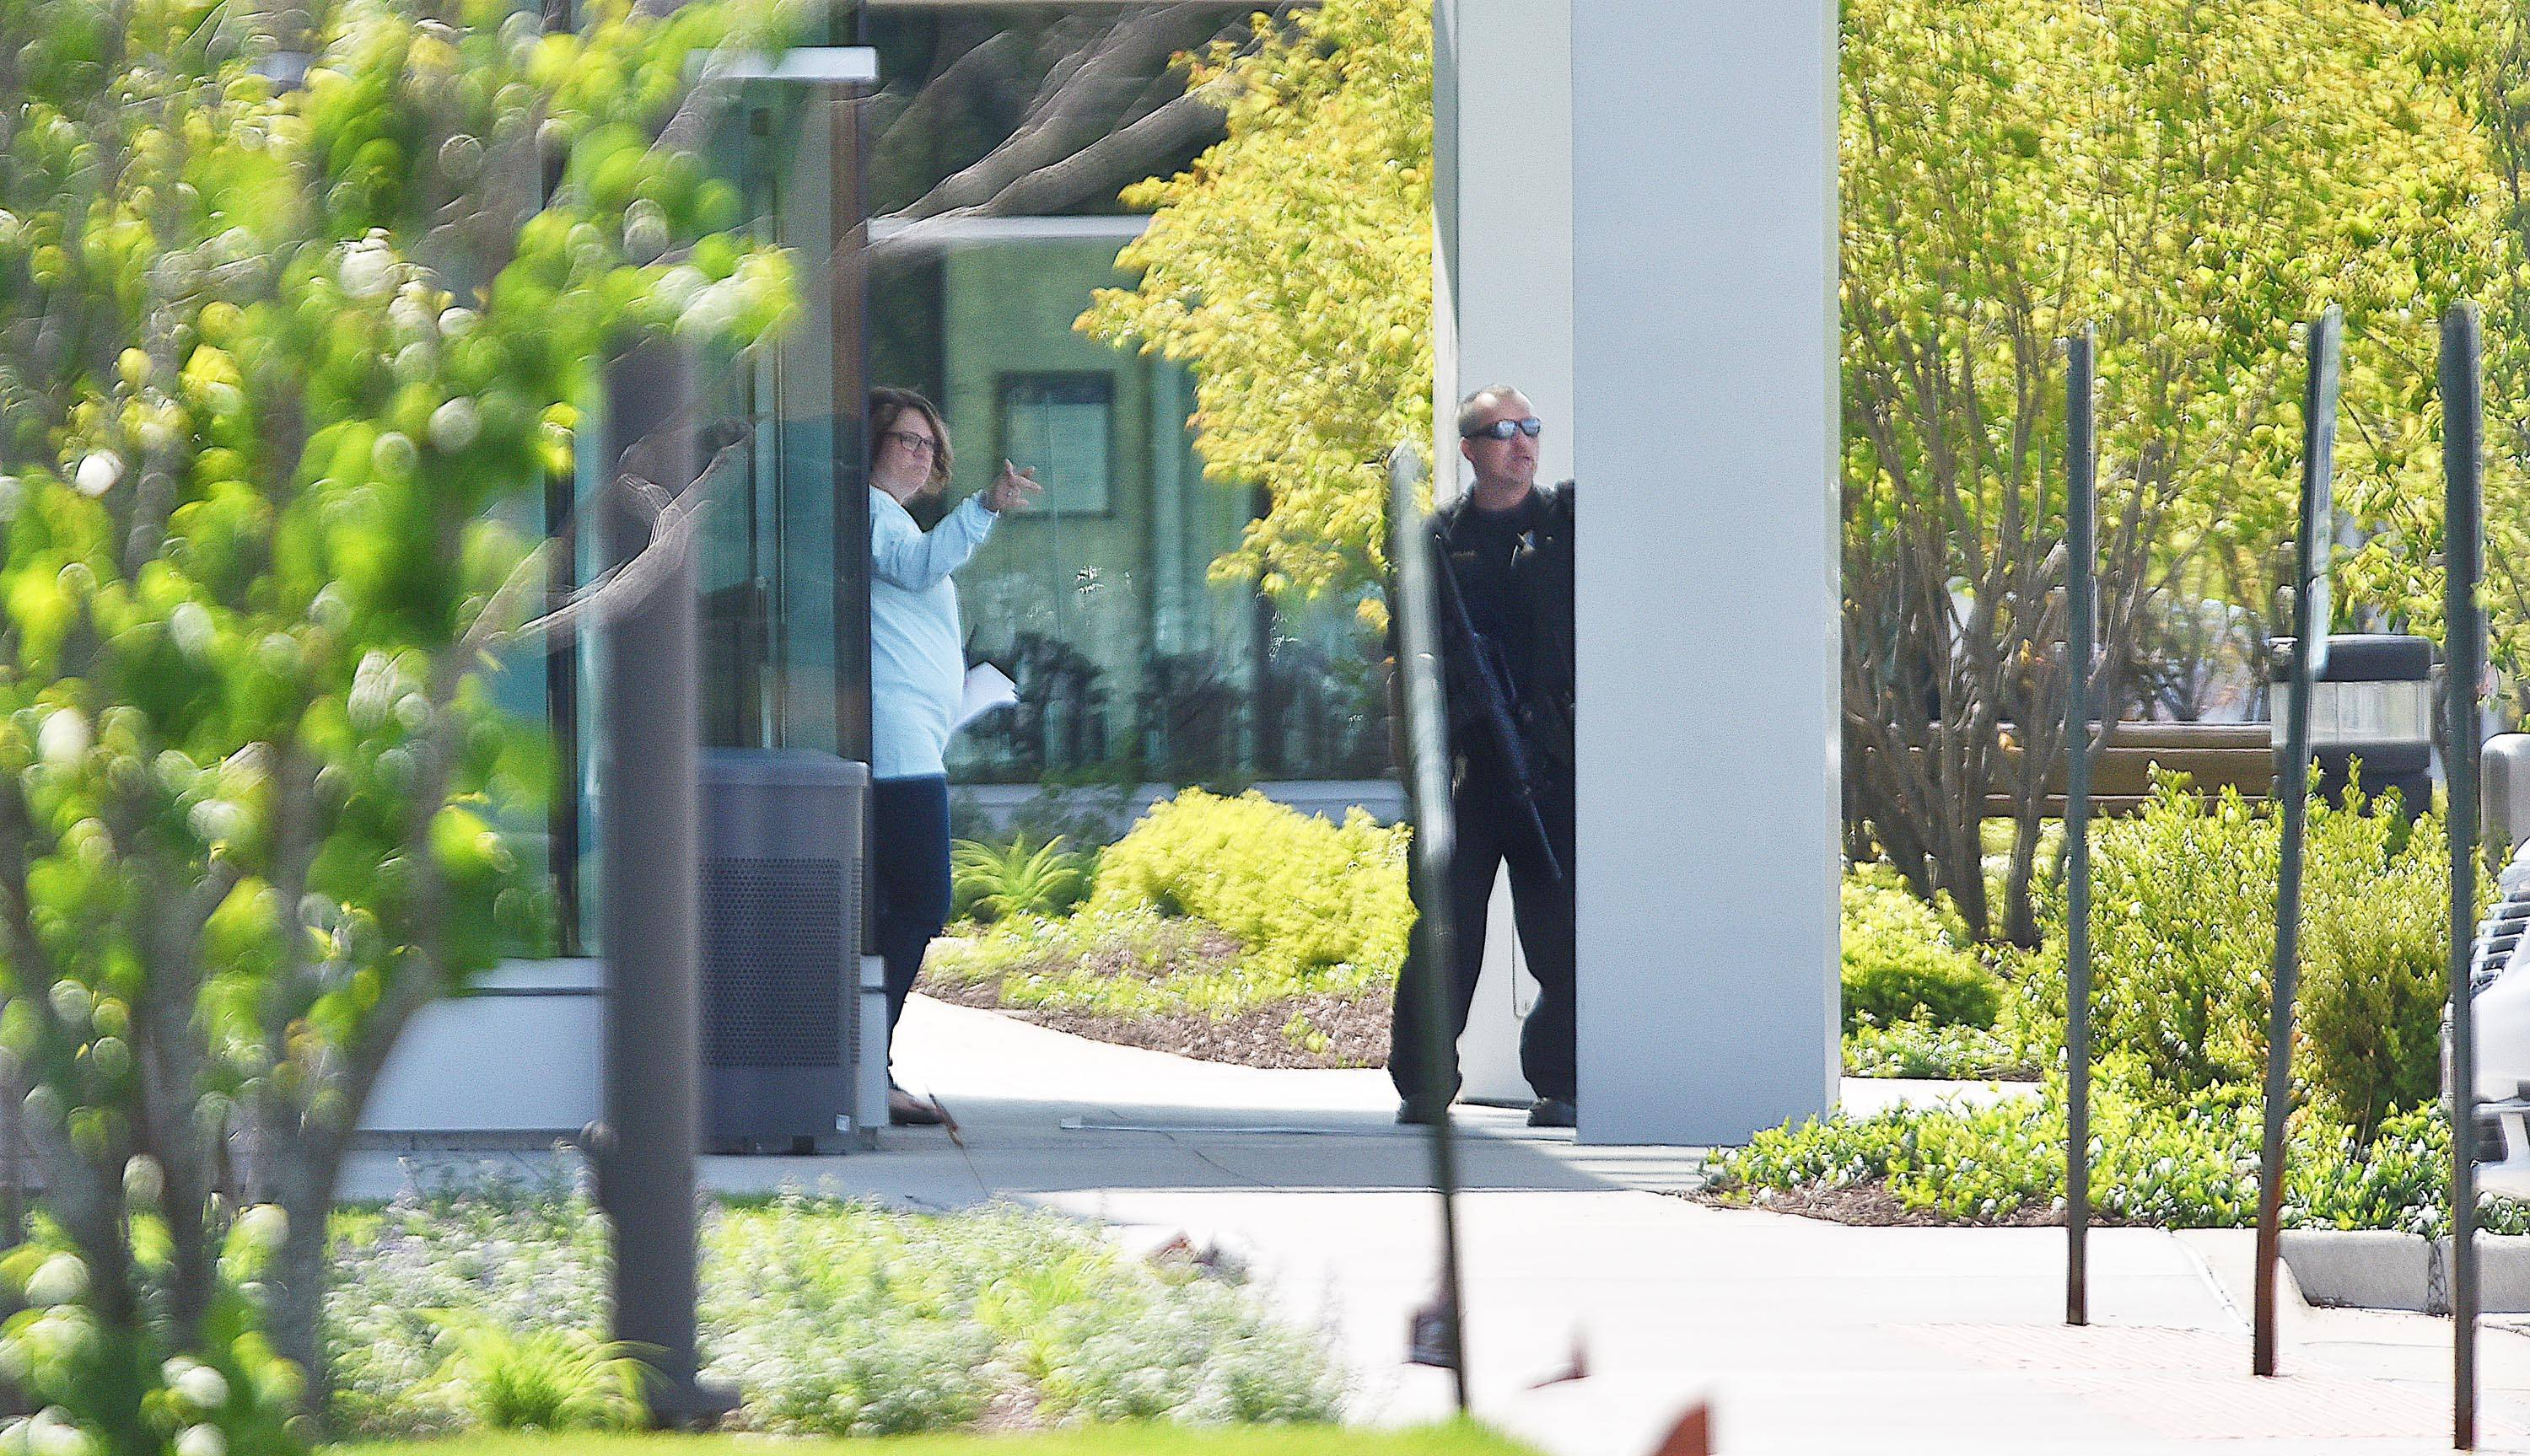 A hospital employee speaks with a police officer at the Delnor Hospital emergency department entrance in Geneva during a hostage situation in May.